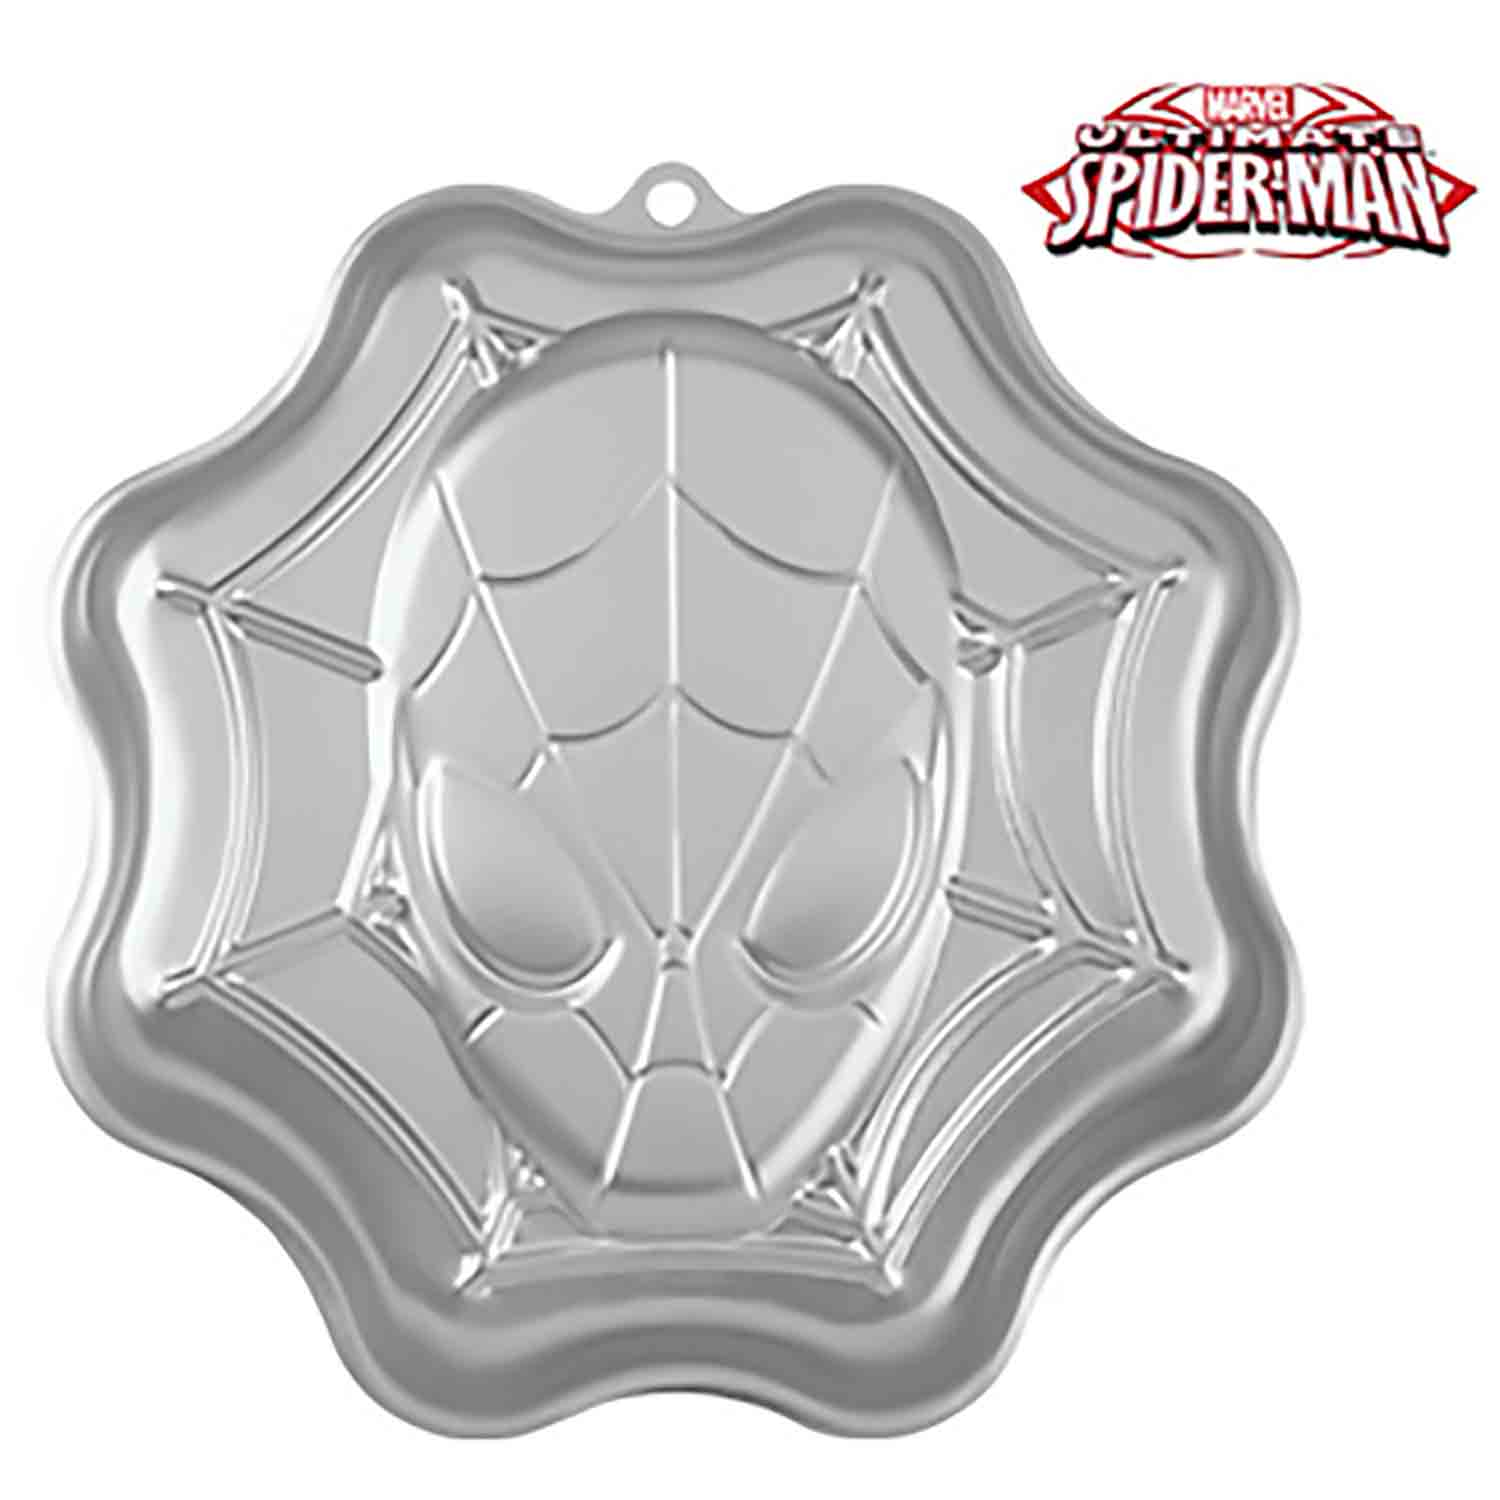 Spiderman Cake Pan